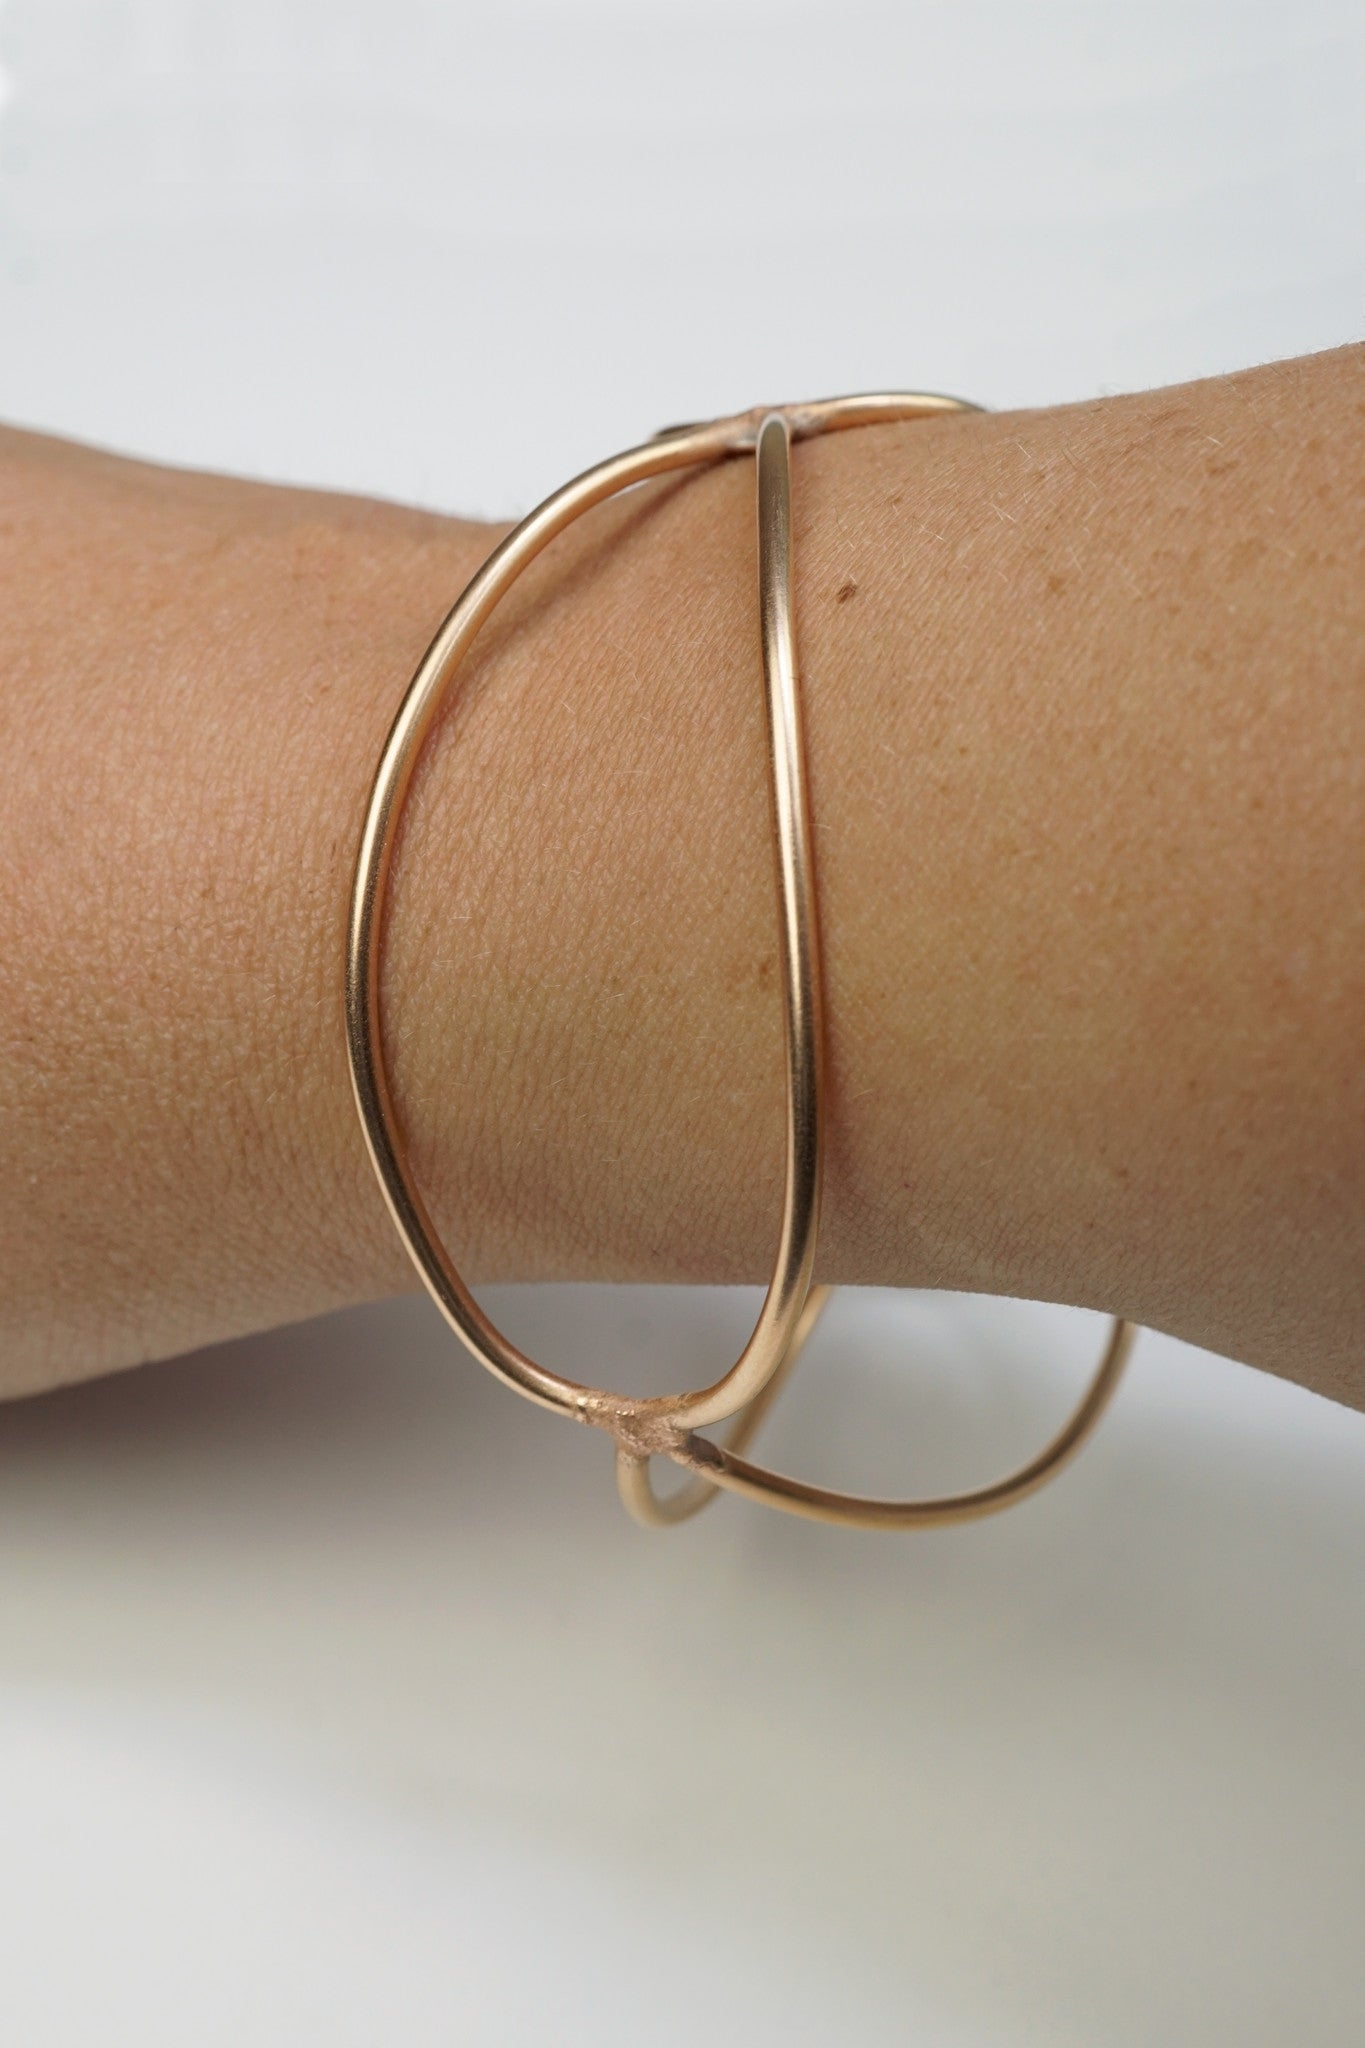 nancy and jackson bracelets designs cuffs brass bangle round bangles collections wire stacking bronze